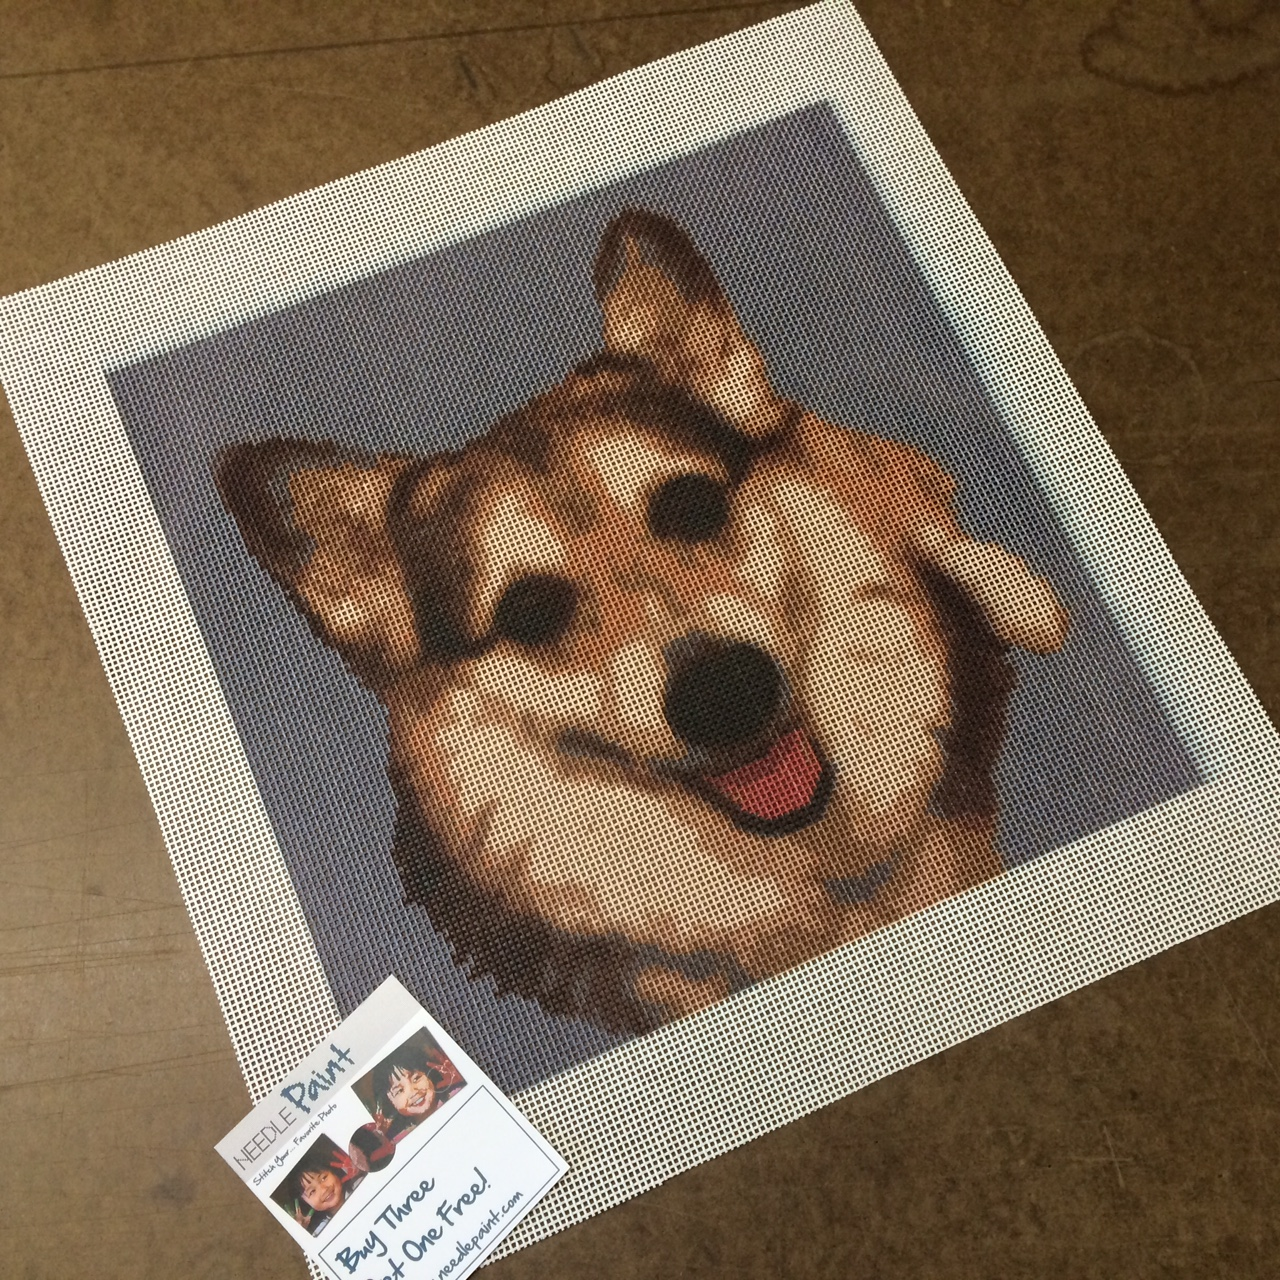 Adorable Corgi Custom Needlepoint Kit